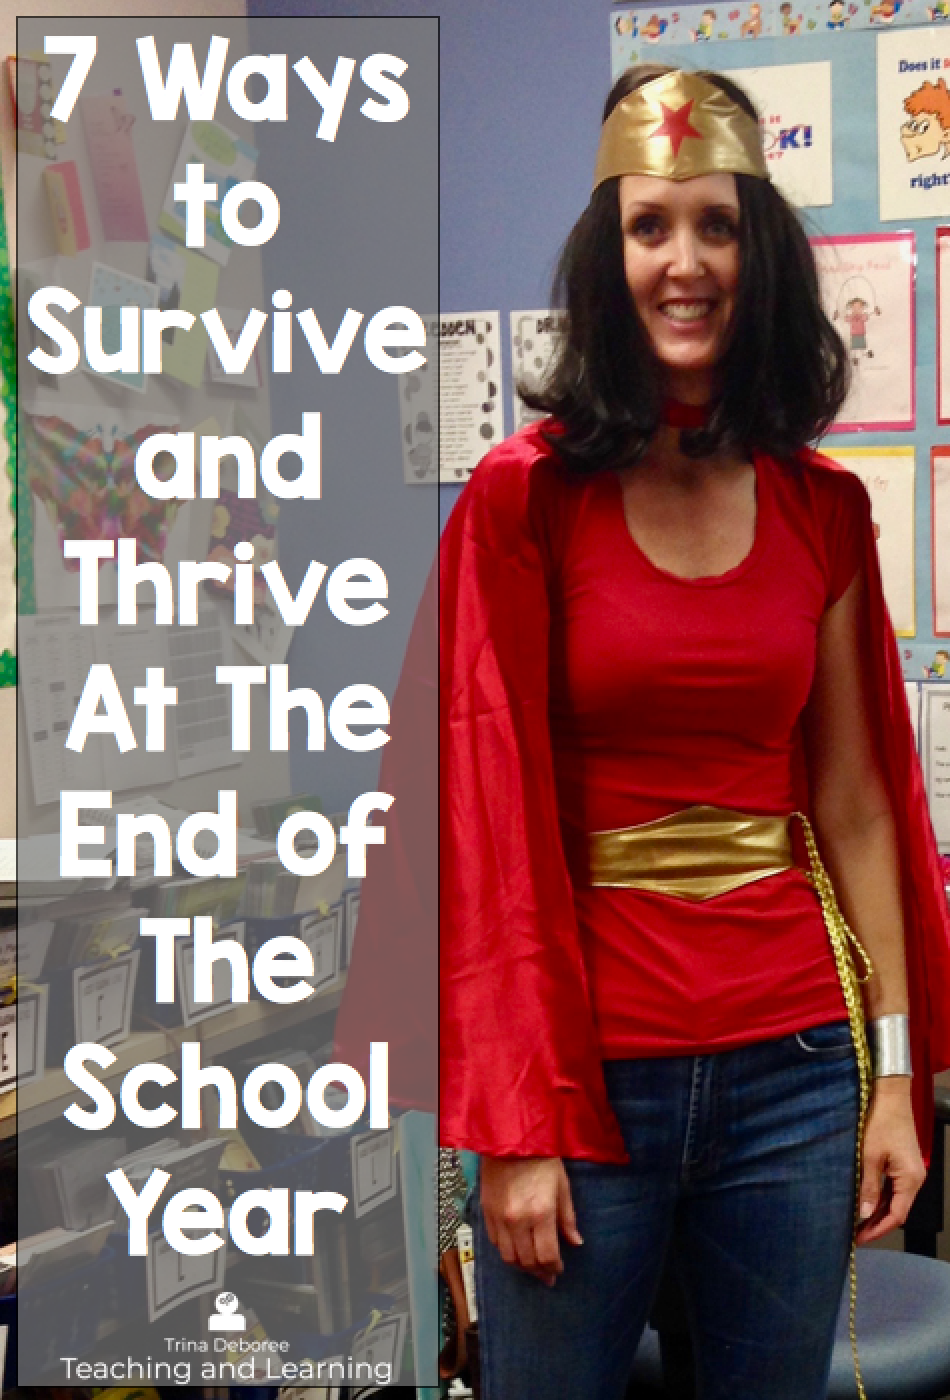 7 Ways to Survive and Thrive at the End of The School Year